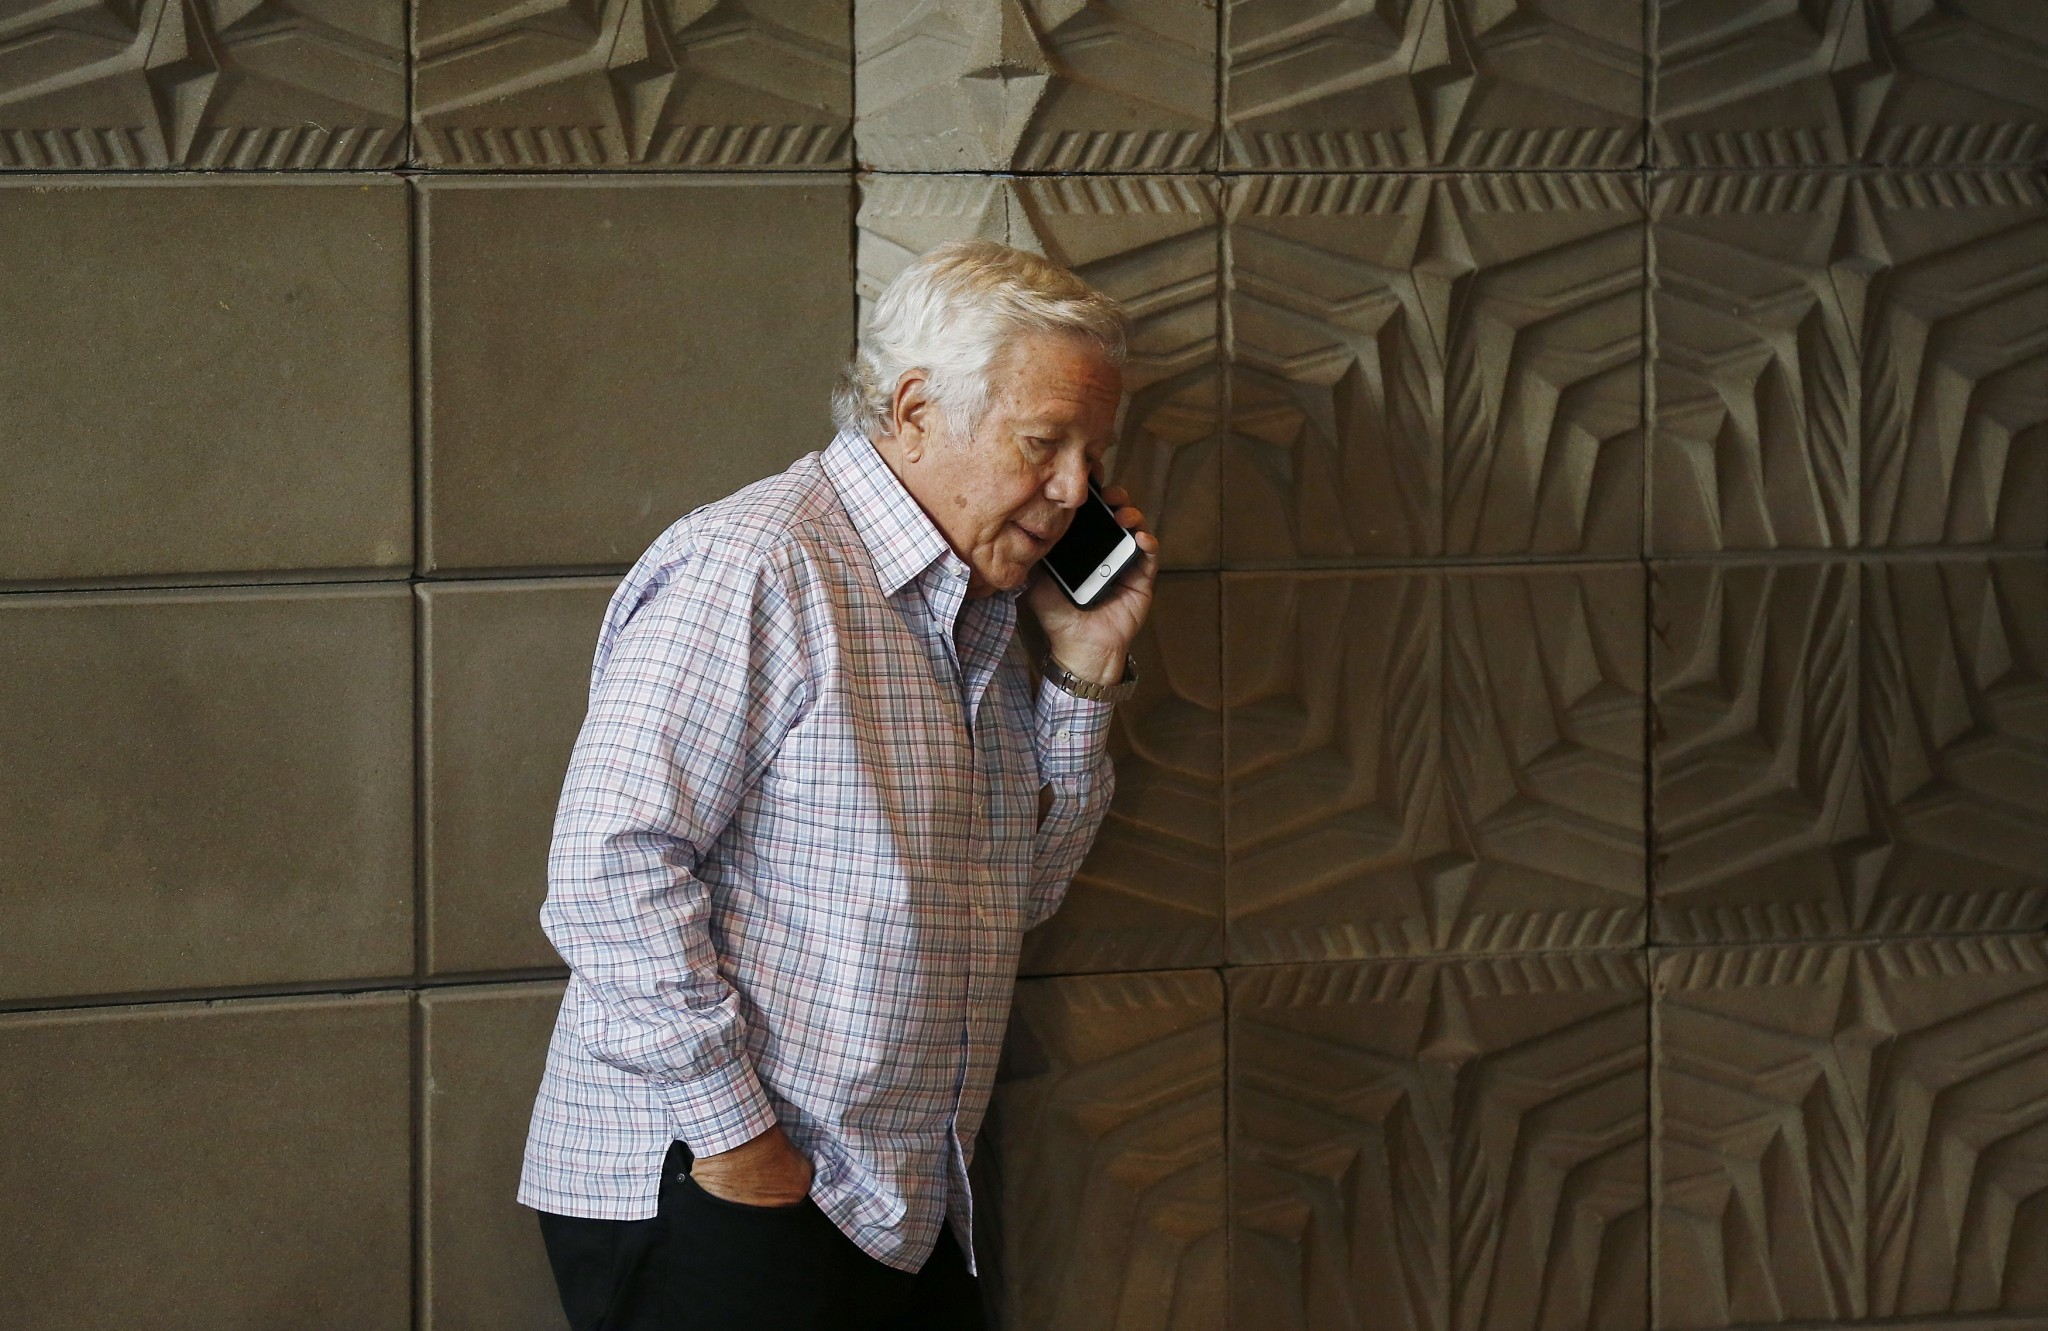 Robert Kraft said he hopes cornerback Malcolm Butler can stay with Patriots